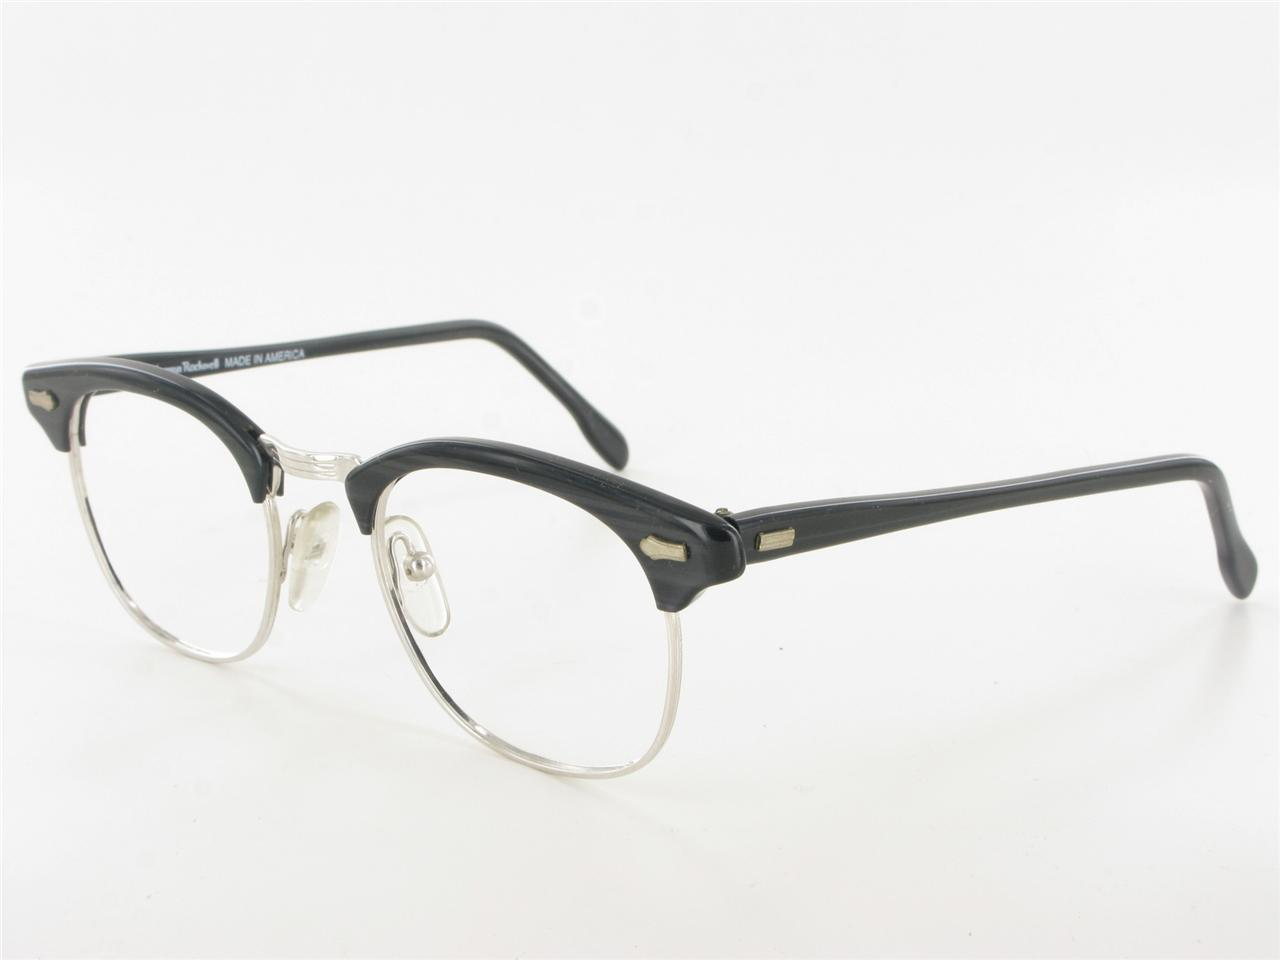 Are Plastic Eyeglass Frames In Style : NORMAN ROCKWELL Black Silver Clubman Style Eyeglass Frames ...